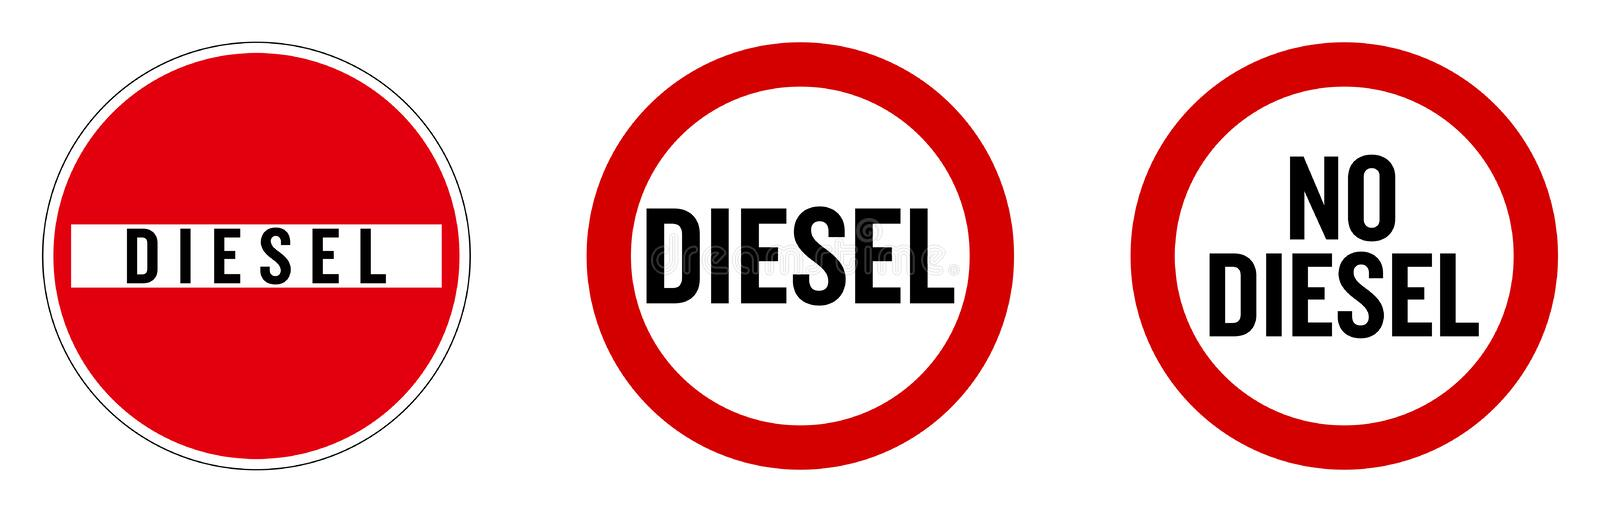 Diesel not allowed sign. Text in `no entry` roadsign, and red circle. royalty free illustration